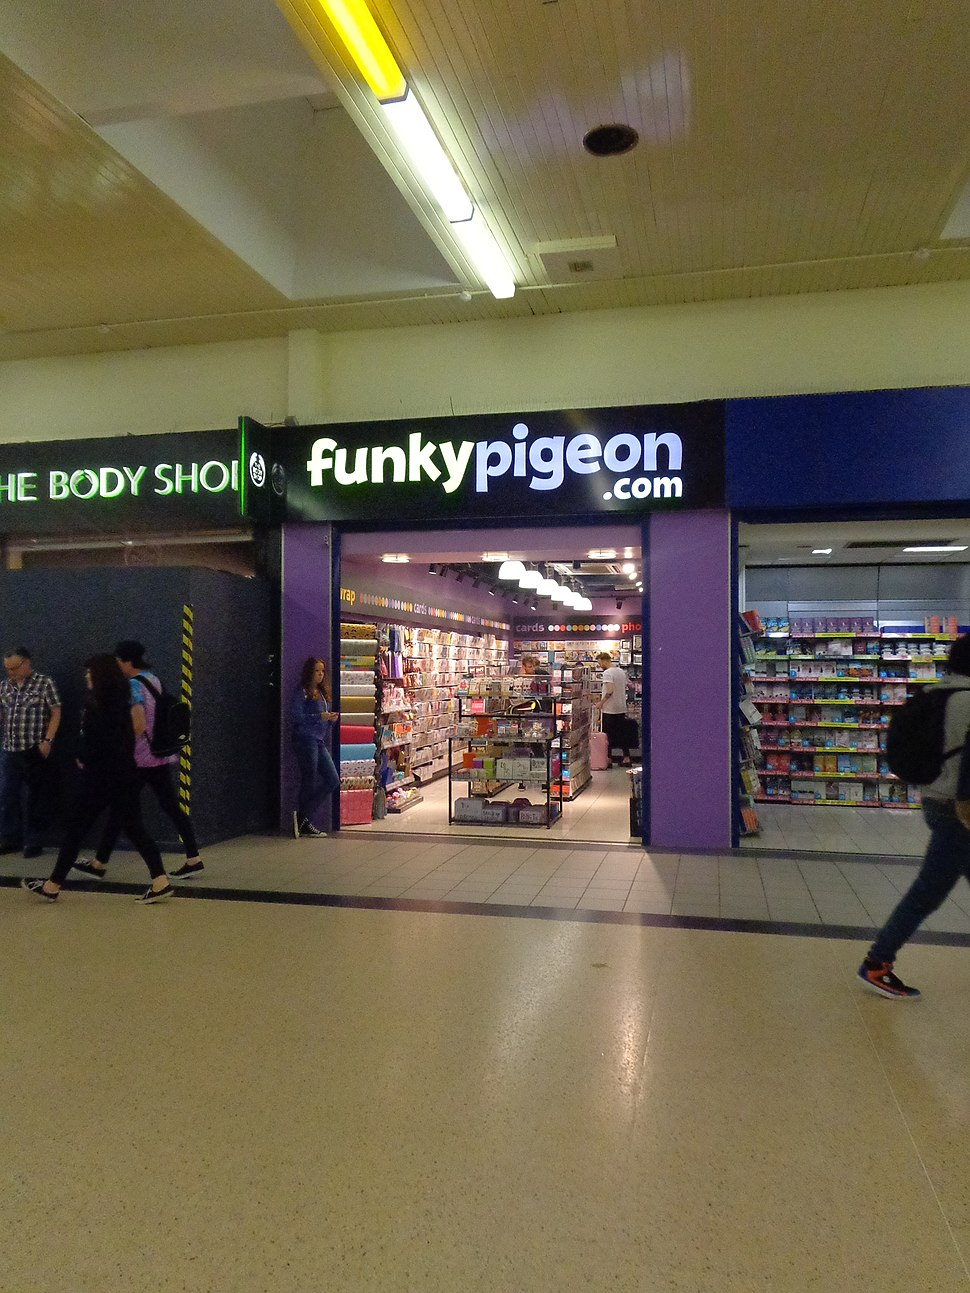 Funky Pigeon.com shop, Leeds railway station (19th July 2014)